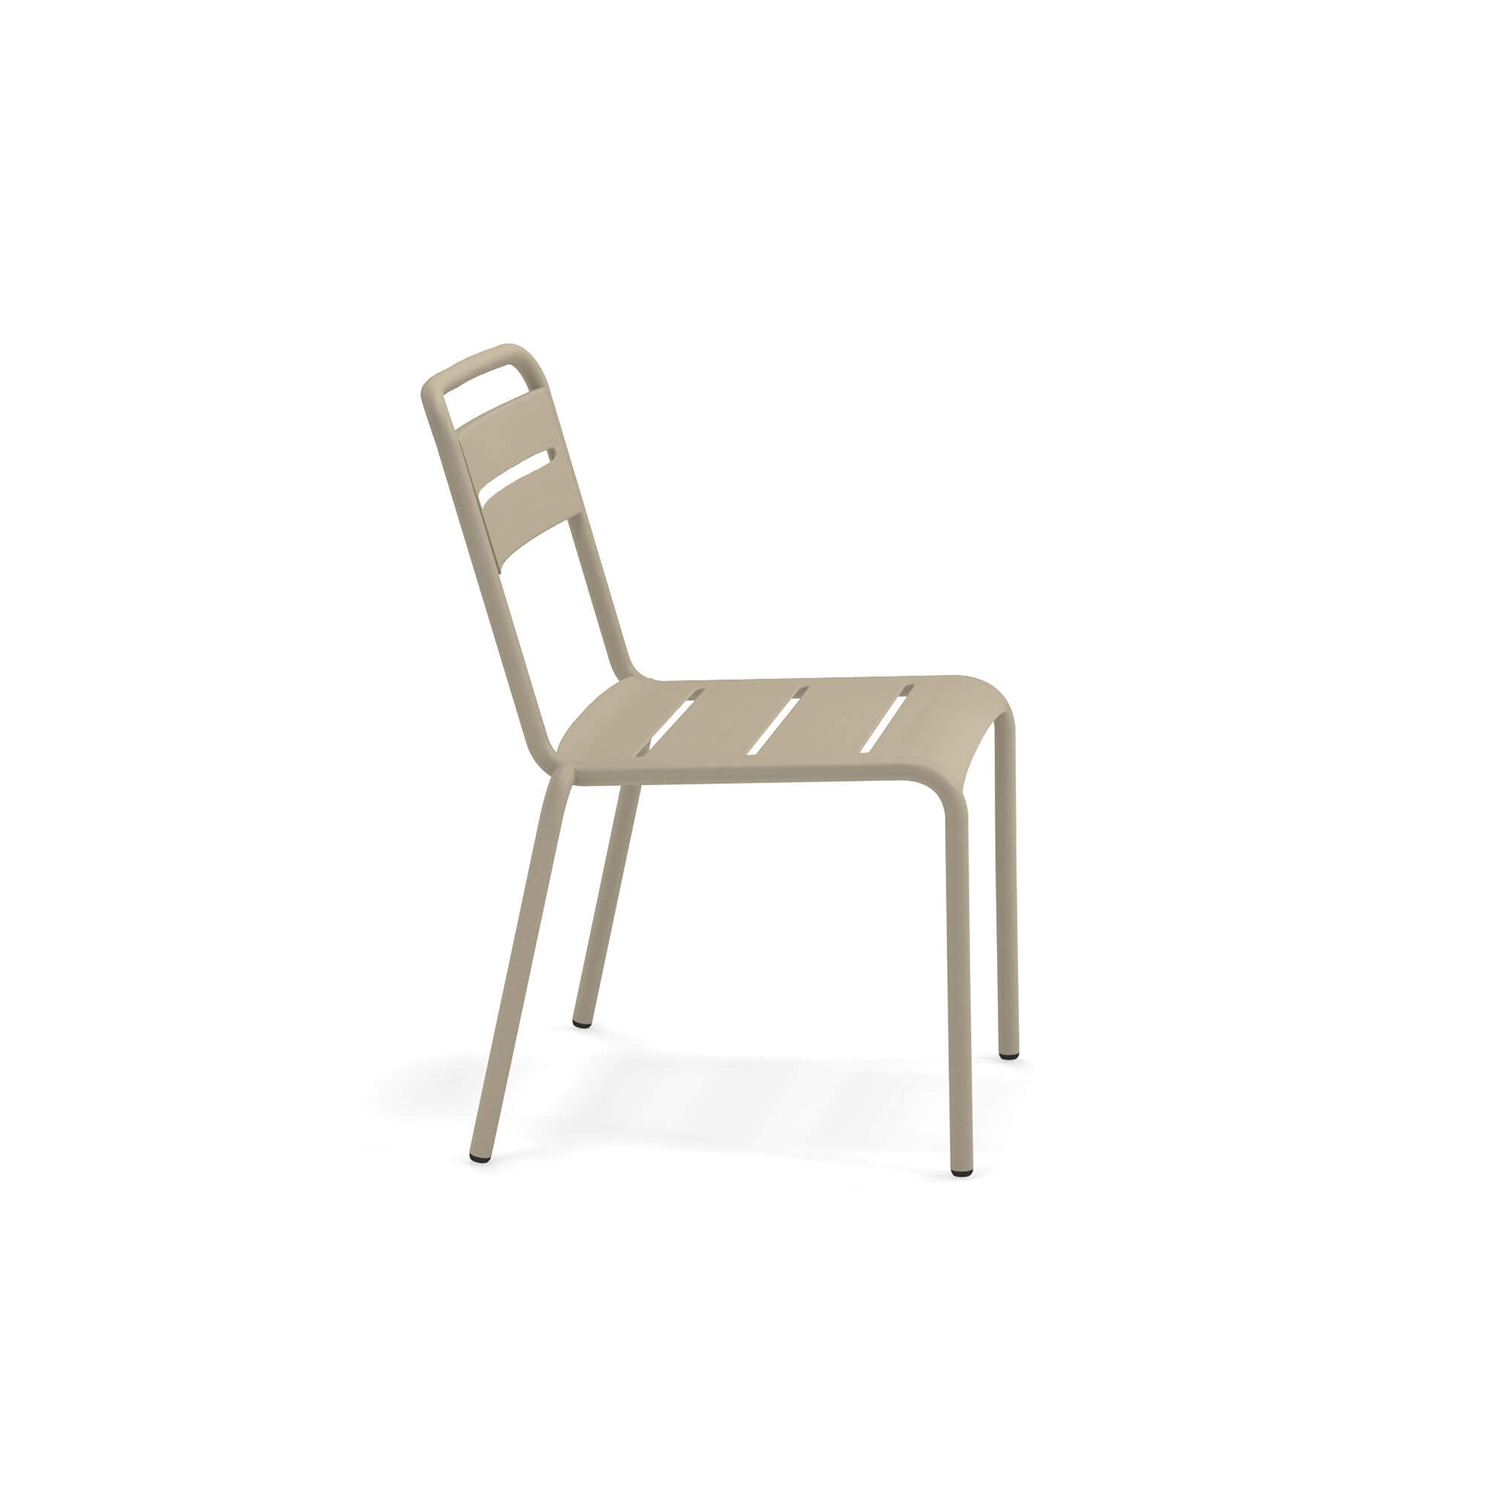 Star Chair - Set of 2 - The Star Chair - Set of 2 is a set of two chairs that come in a wide array of colours so you can choose the best one to suit your garden. The Star collection is a series of chairs and tables, the Star collection is an evergreen among EMU products. Simple shapes, colour and versatility mark this collection which is defined by soft, classic lines, ideal in multiple contexts and surroundings. The Star collection comprises chair, armchair, stool, lounge chair, sofa and tables of various sizes.</p>  | Matter of Stuff